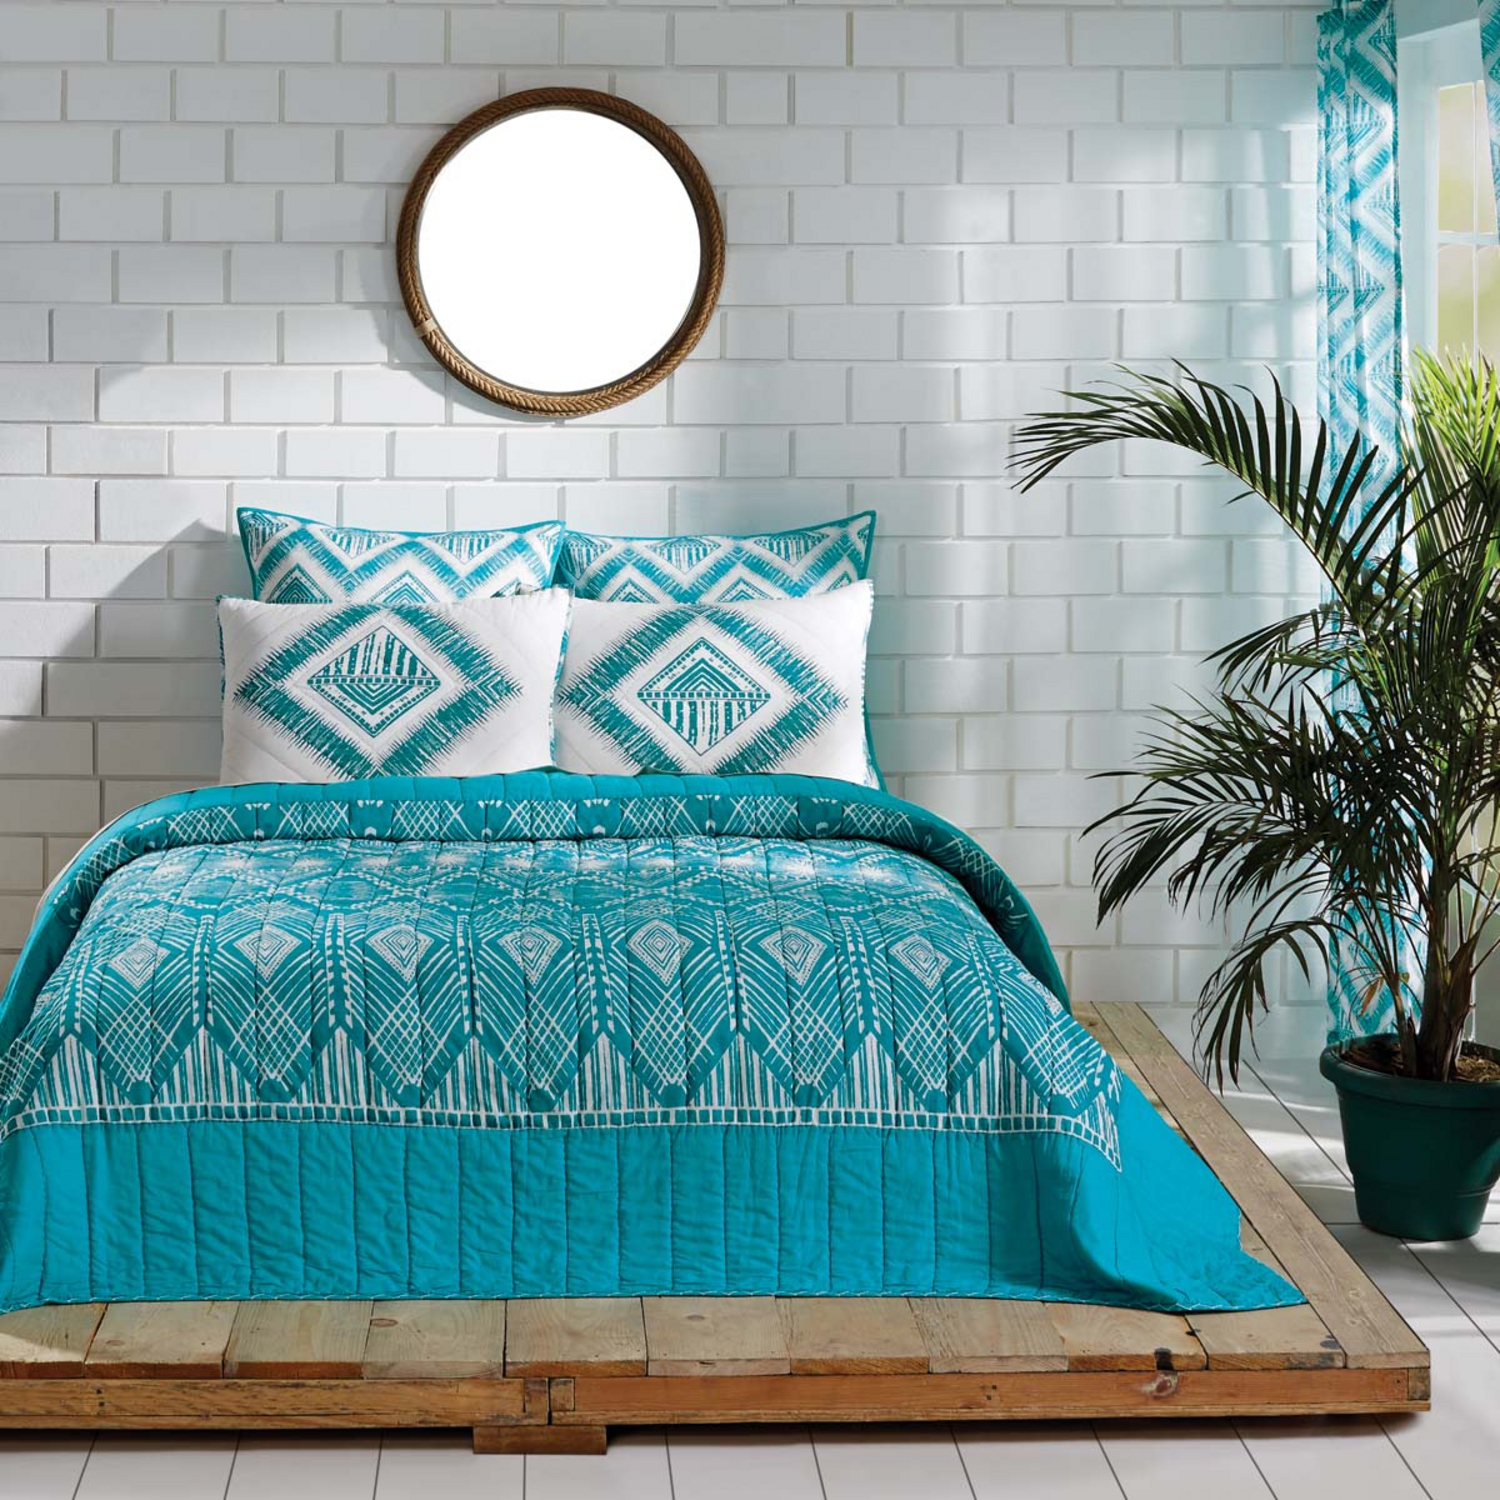 Karina By Vhc Brands Quilts Beddingsuperstore Com